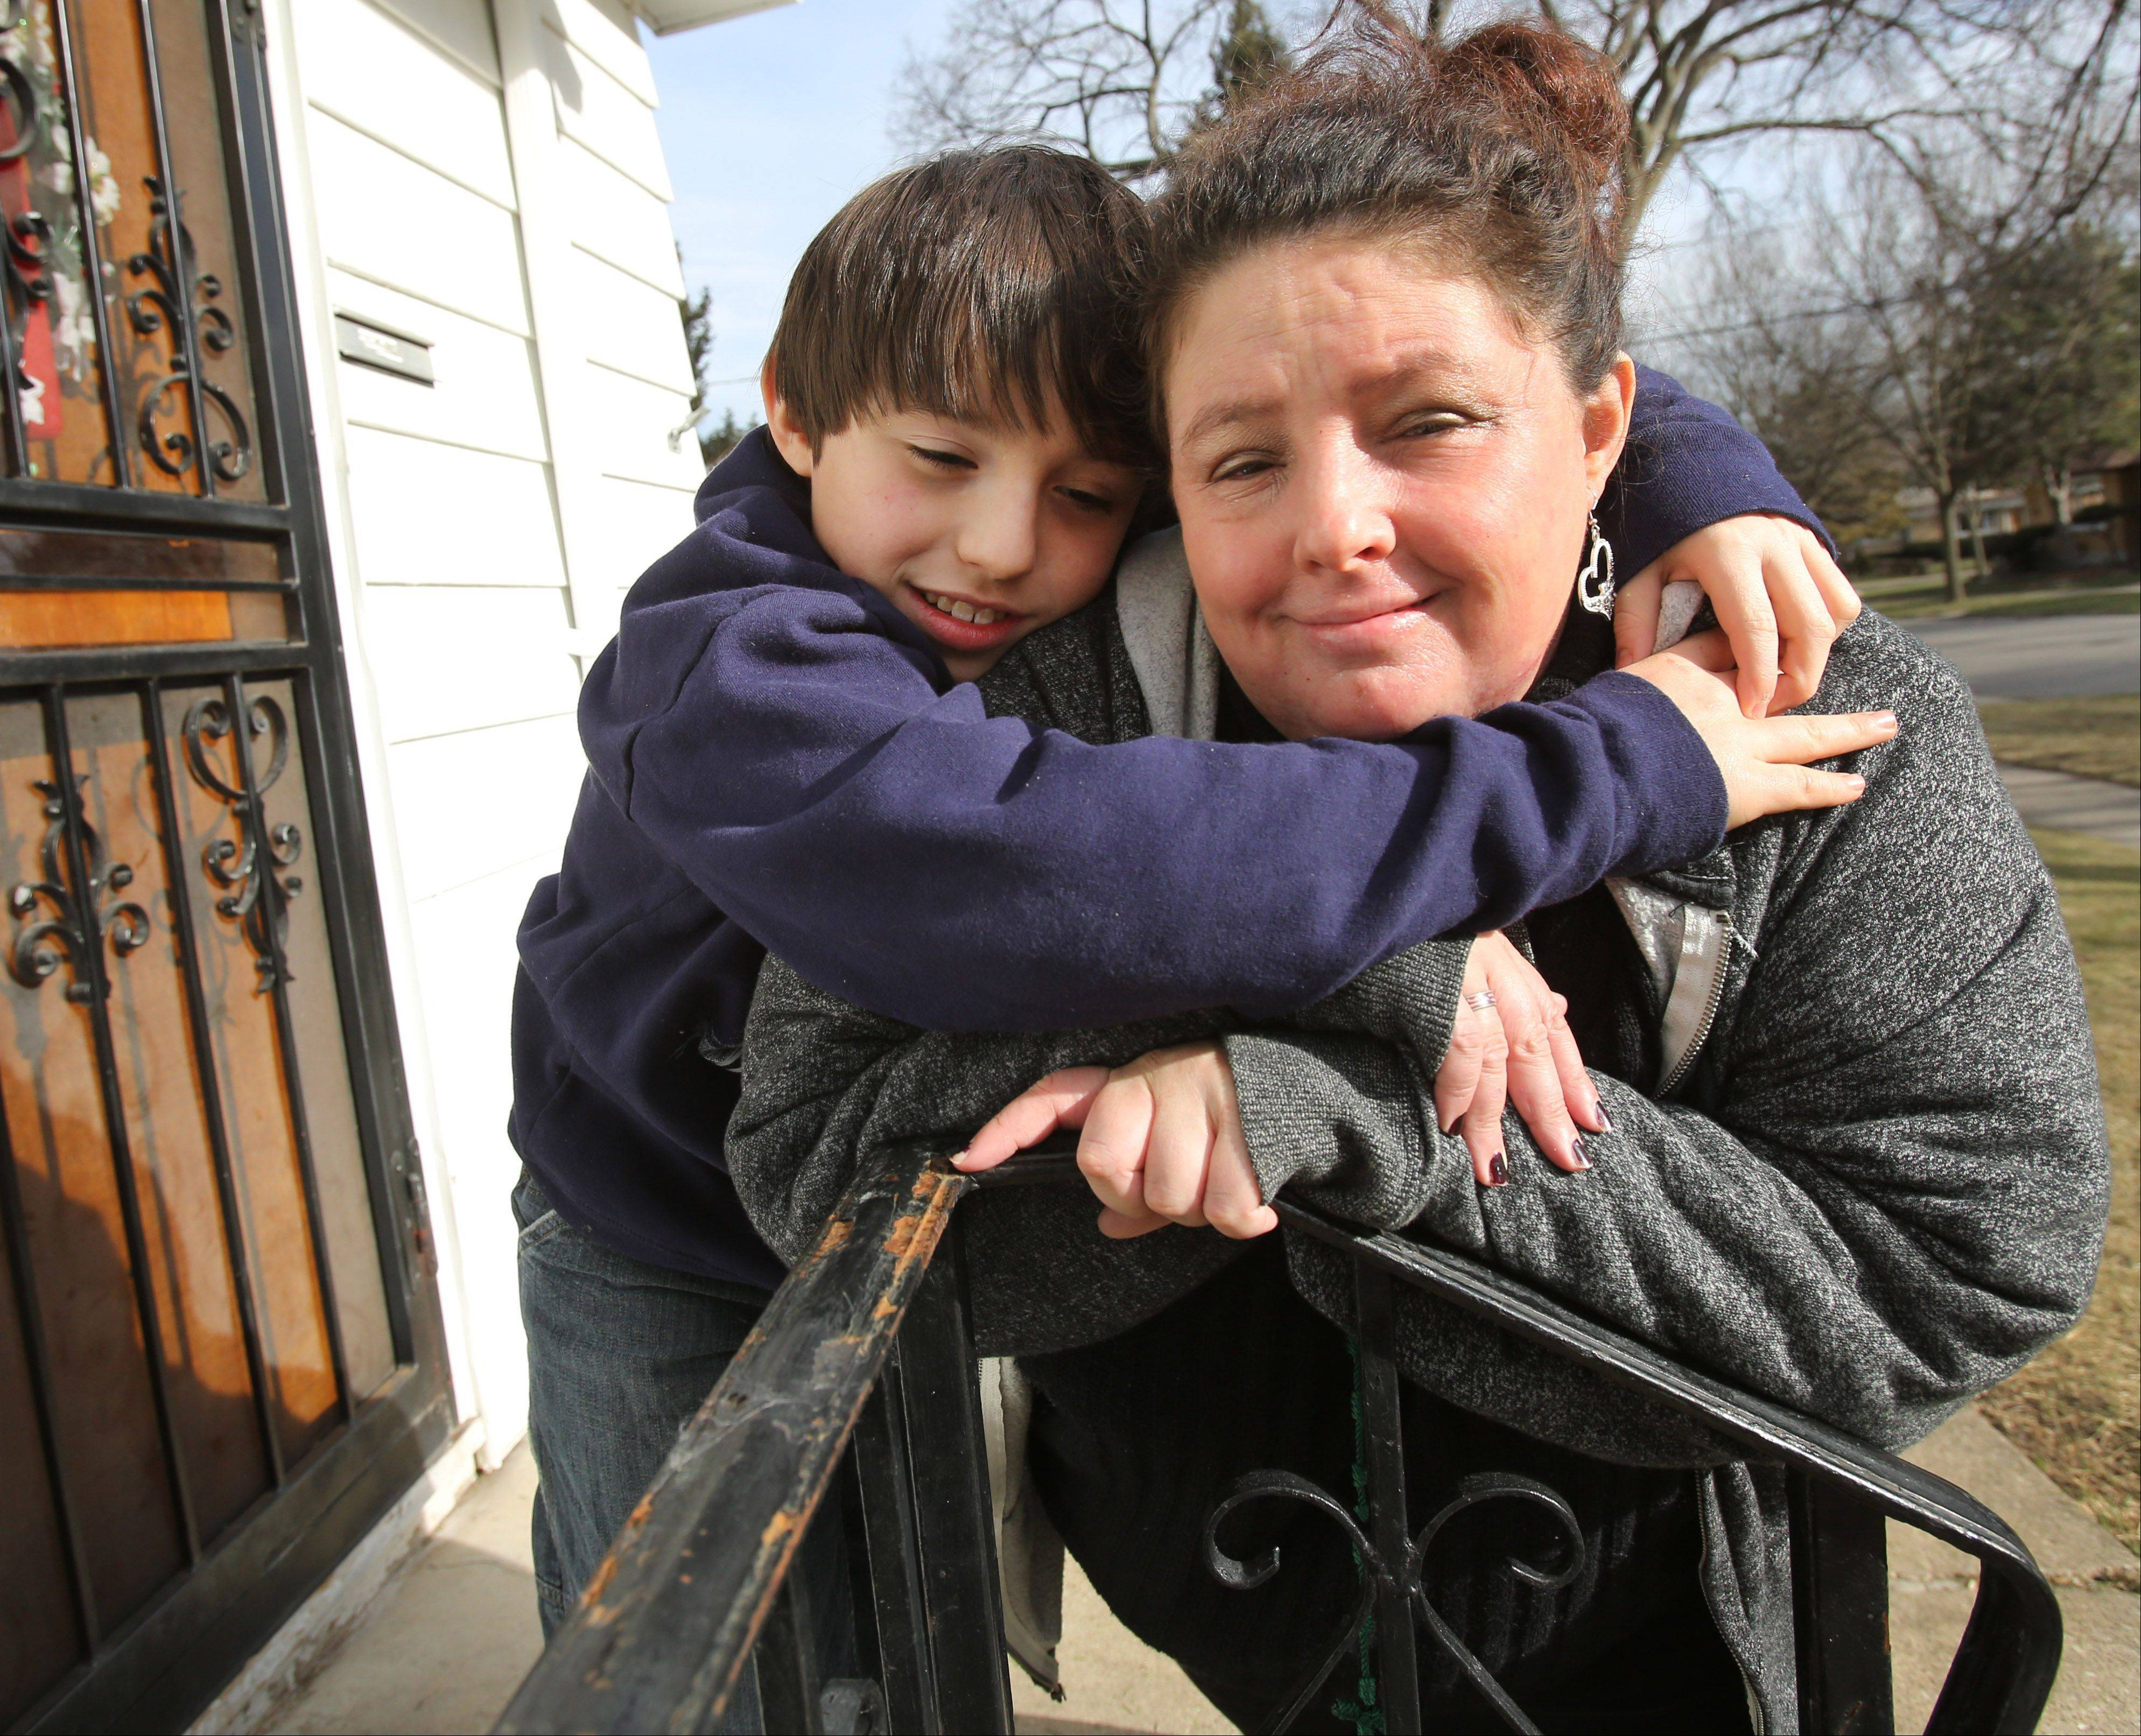 Susan Cloutier-Regan and her son Gabriel, 10, at their Villa Park home. Gabriel attends the School of Expressive Arts and Learning in Lombard and she is concerned with the wetlands surrounding the new school.